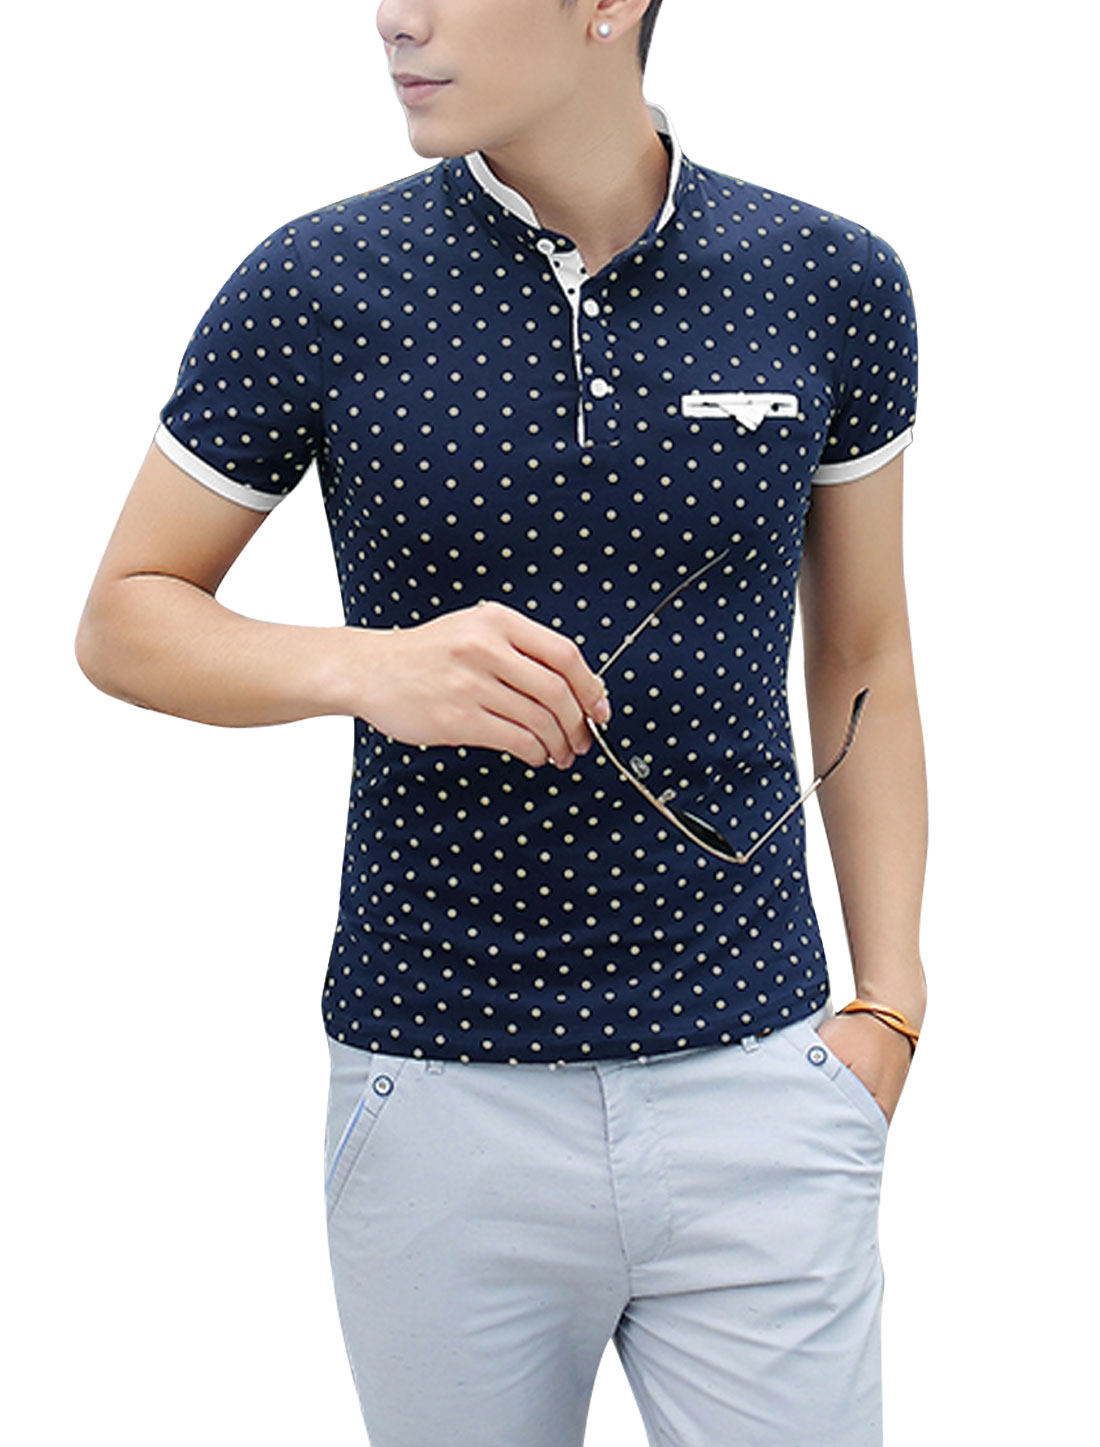 Men Rib Knit Detail Dots Pattern Stylish Polo Shirt Navy Blue S